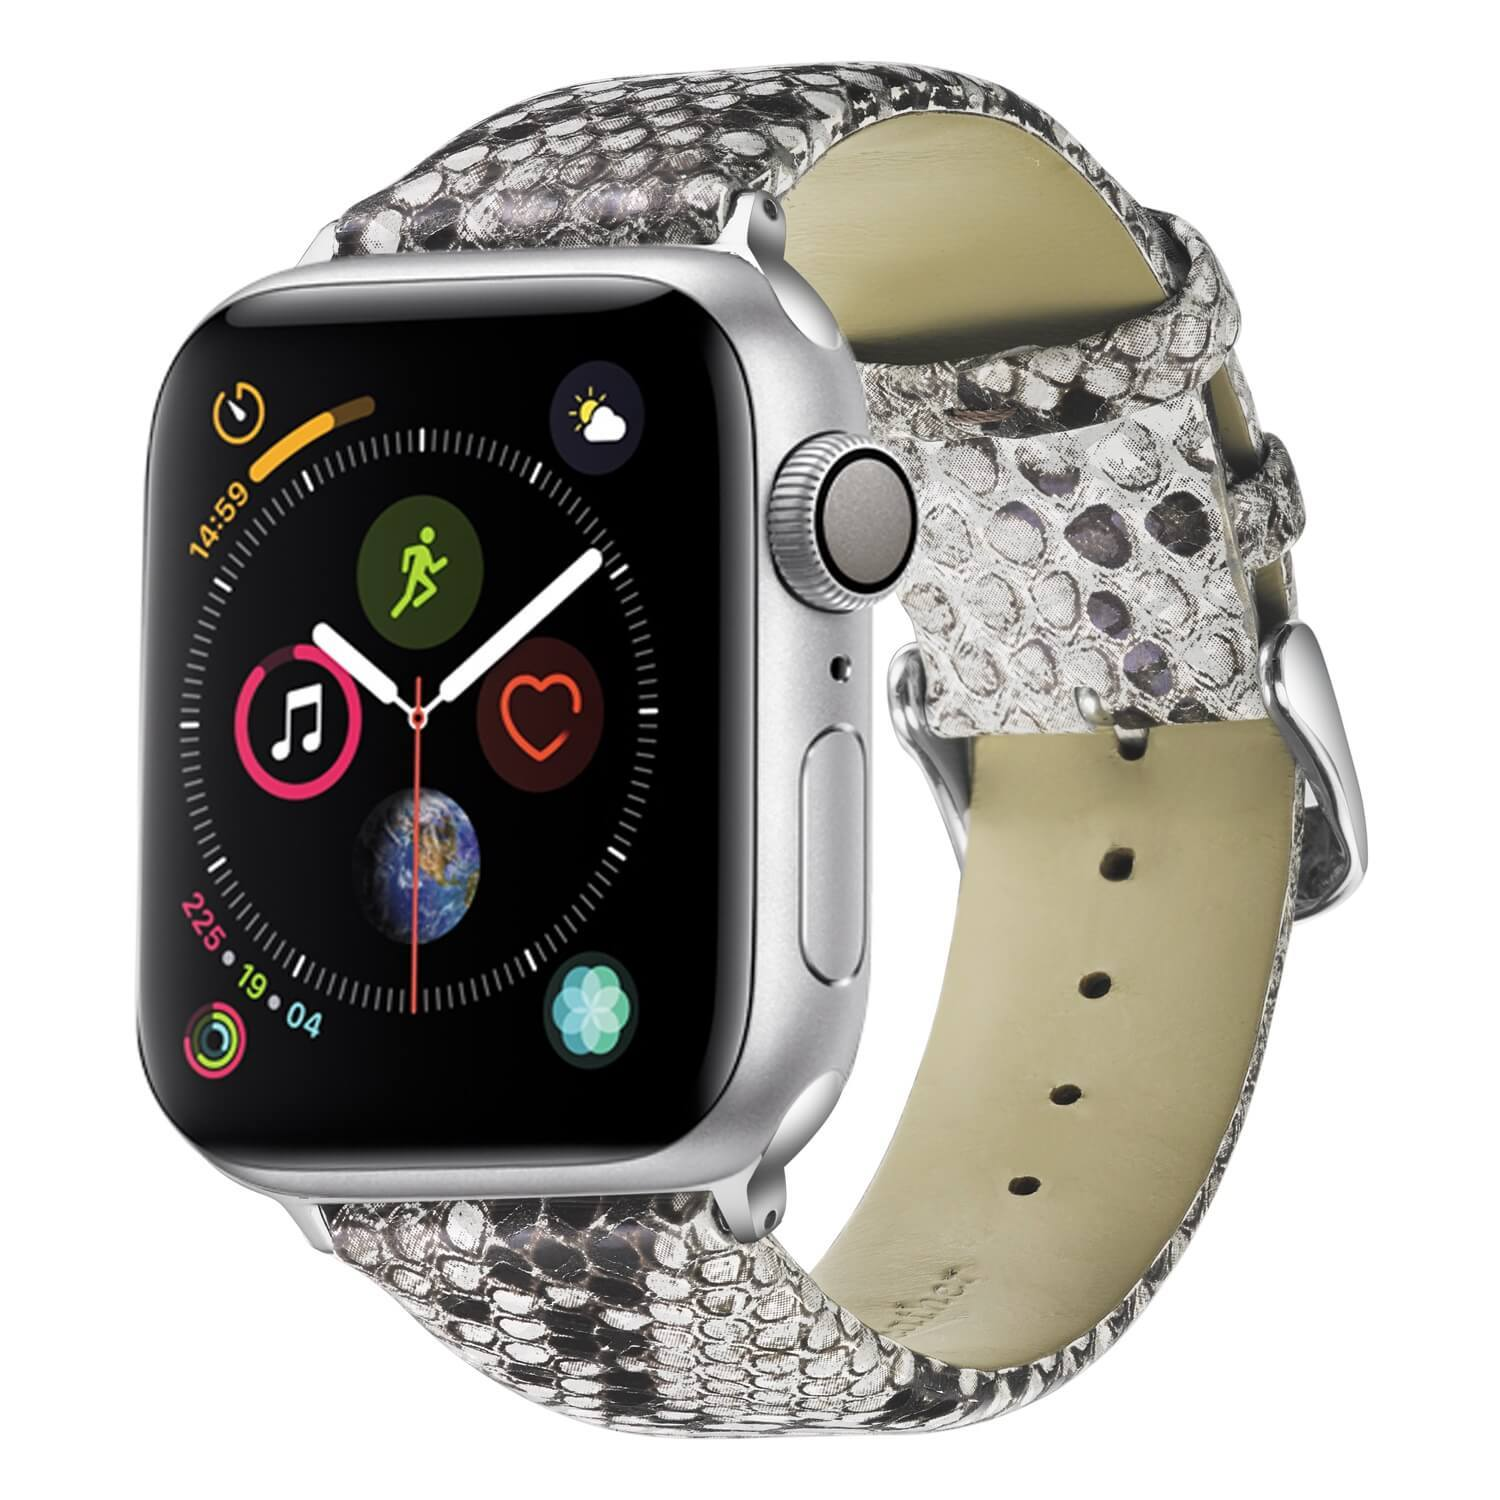 Snakeskin Watch Band Apple Leather Watch Straps Snakeskin Gray